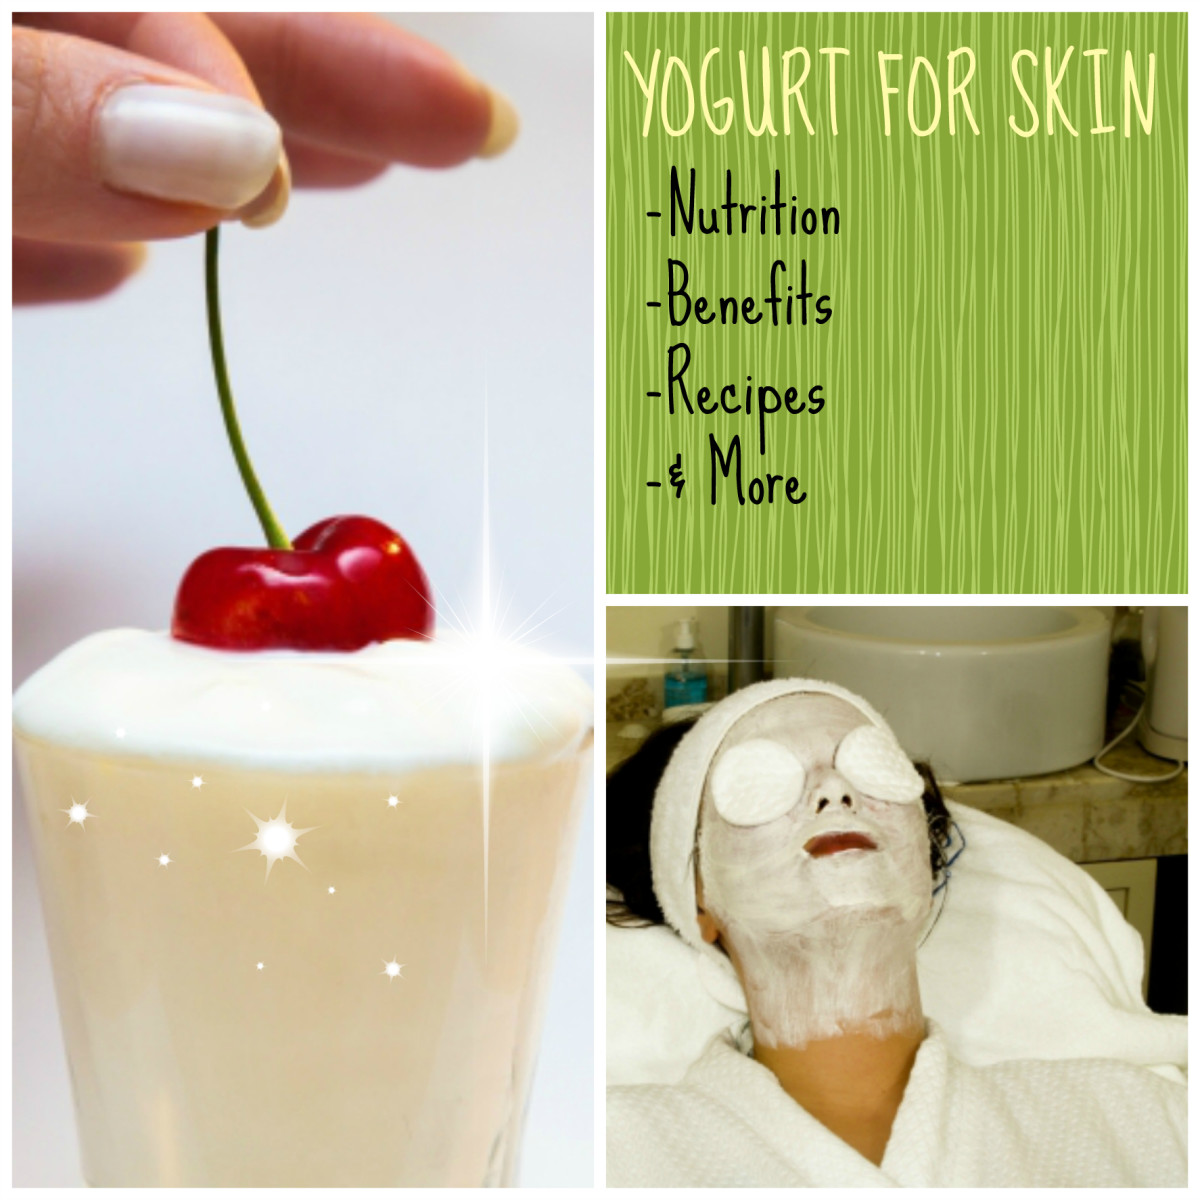 How to Utilize the Powerful Nutrients in Yogurt for Glowing Skin